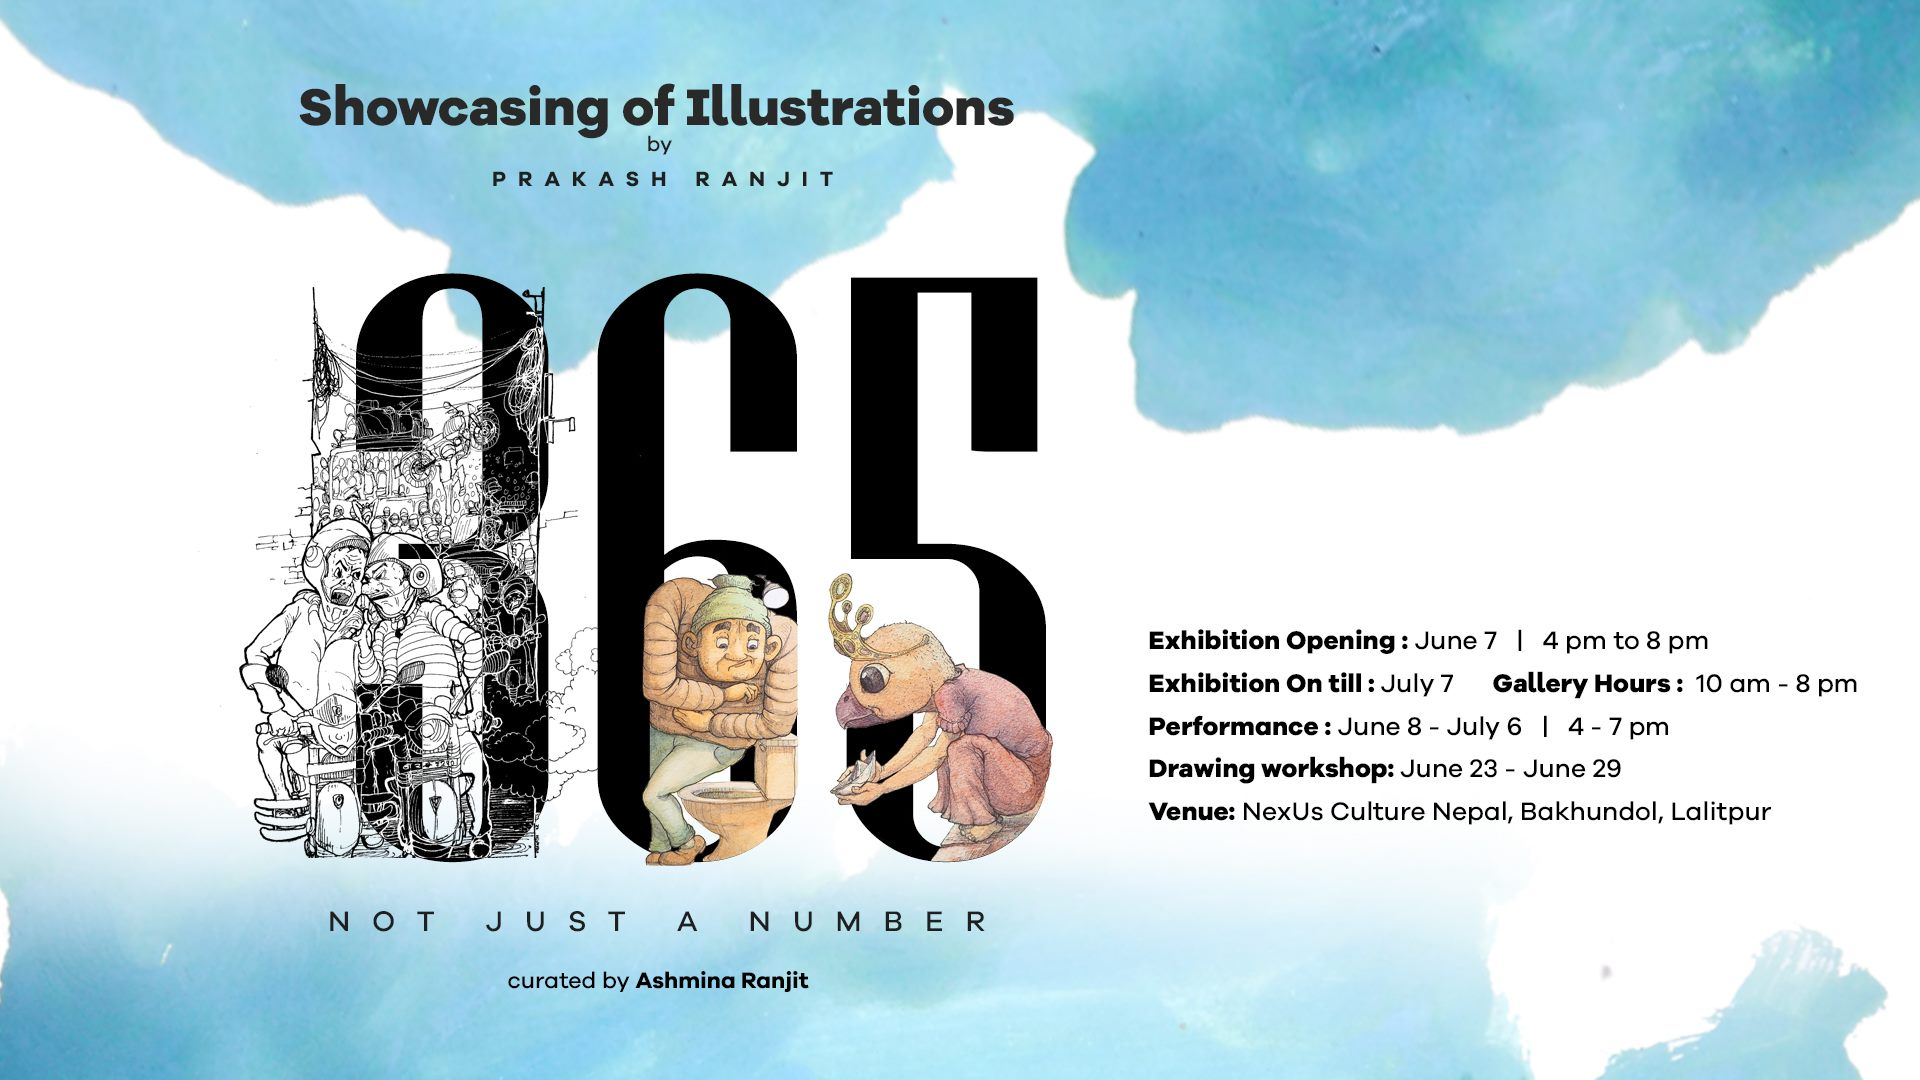 365, not just a number : Showcasing of Illustrations